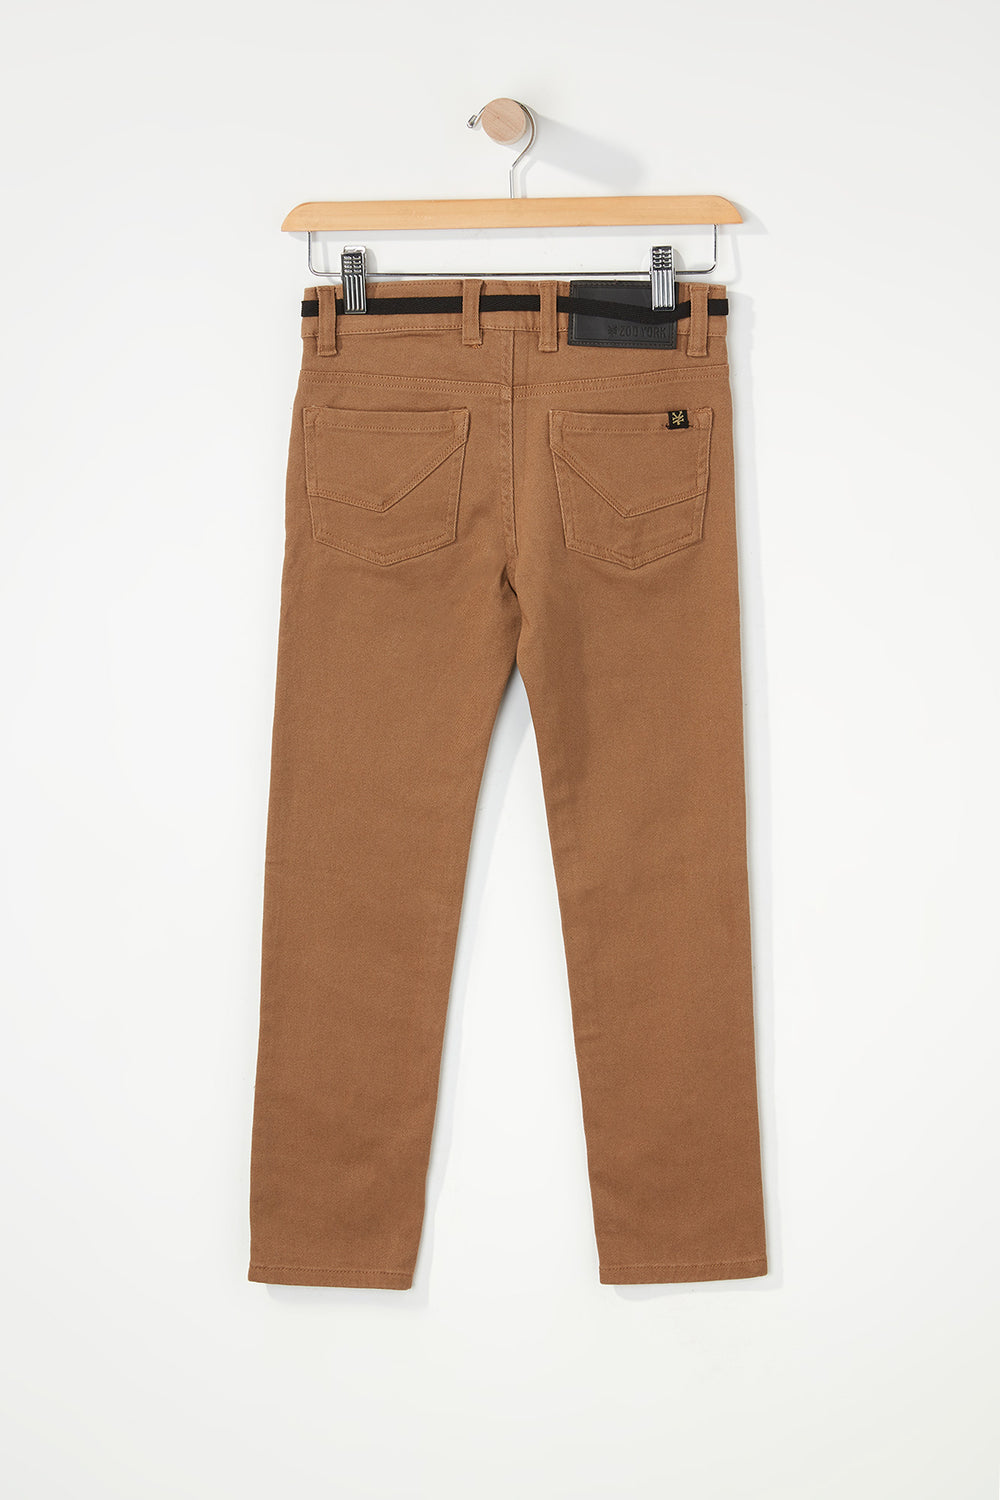 Zoo York Boys Stretch Skinny Jeans Camel